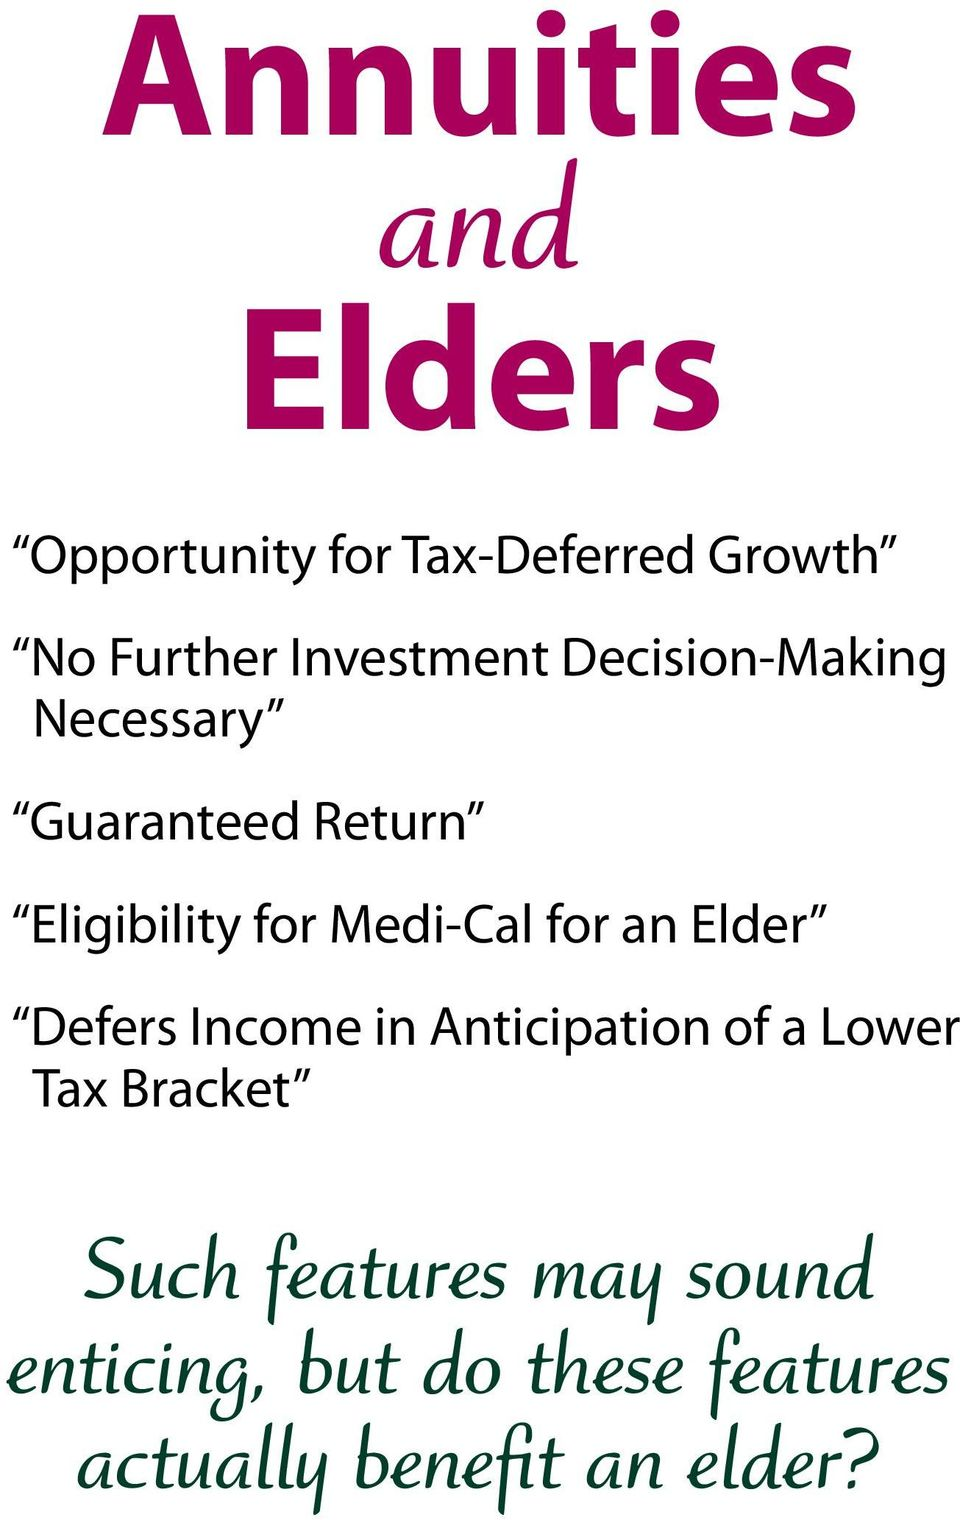 Medi-Cal for an Elder Defers Income in Anticipation of a Lower Tax